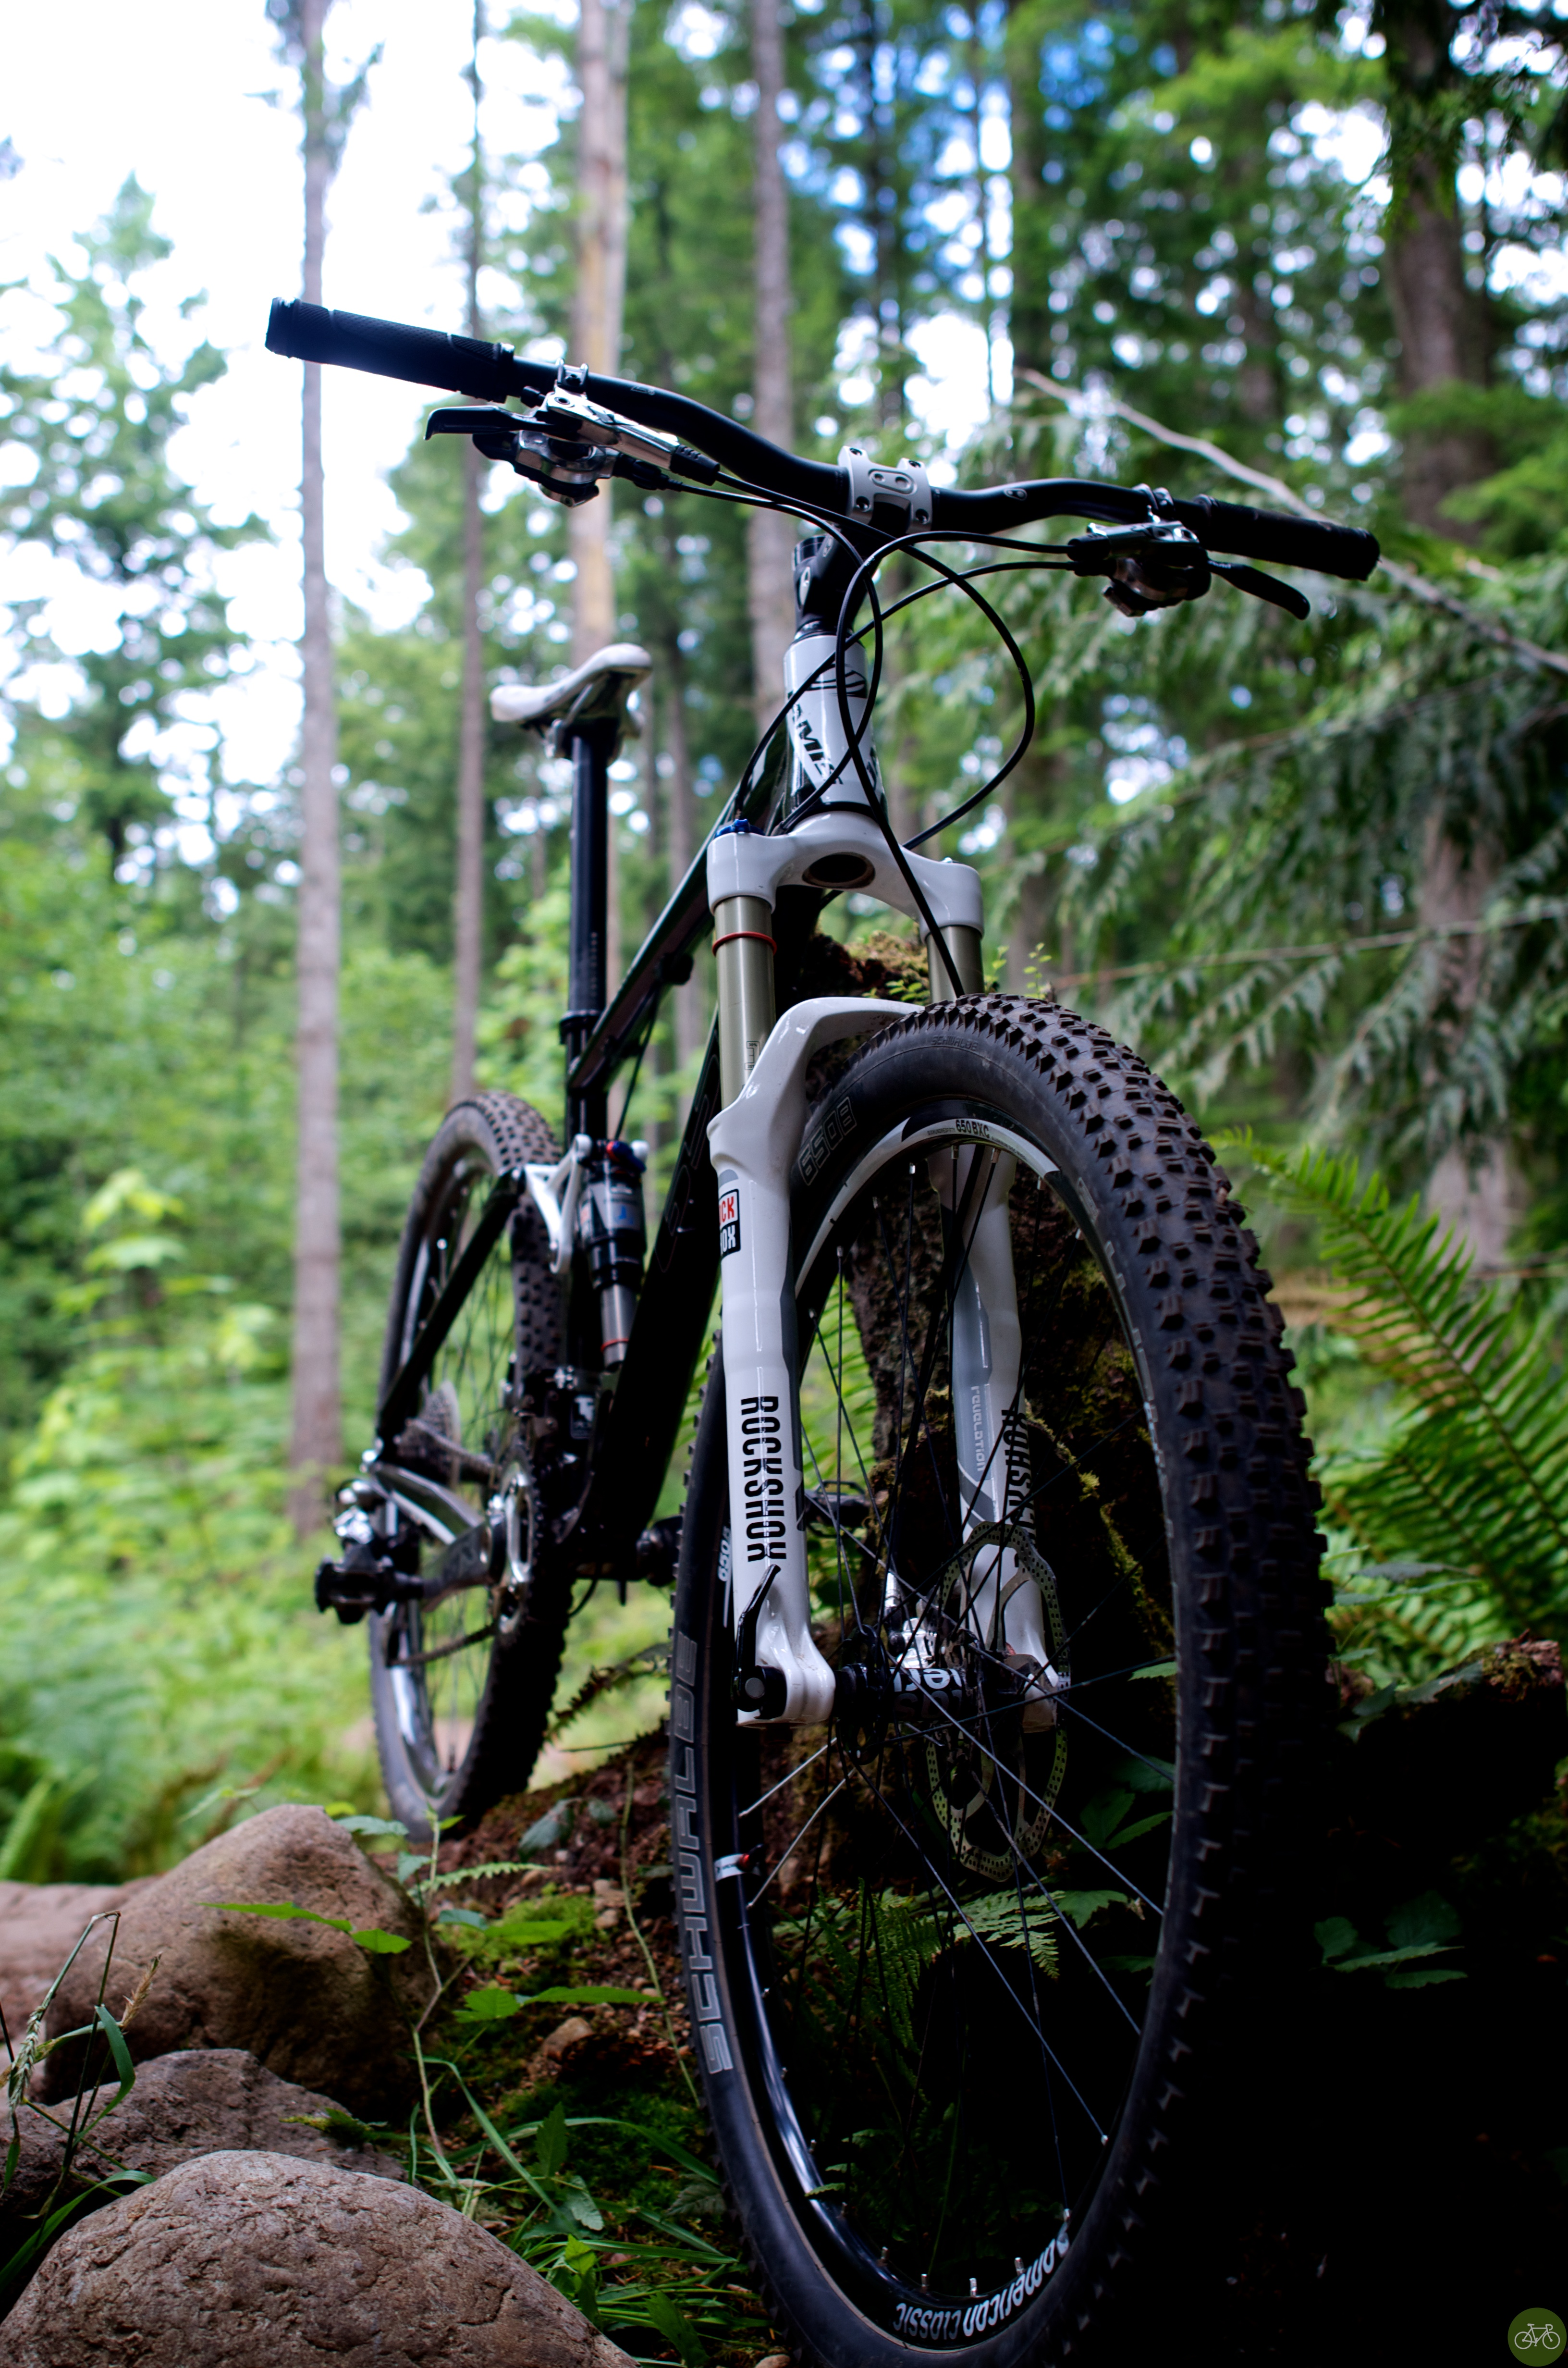 650b in the trees